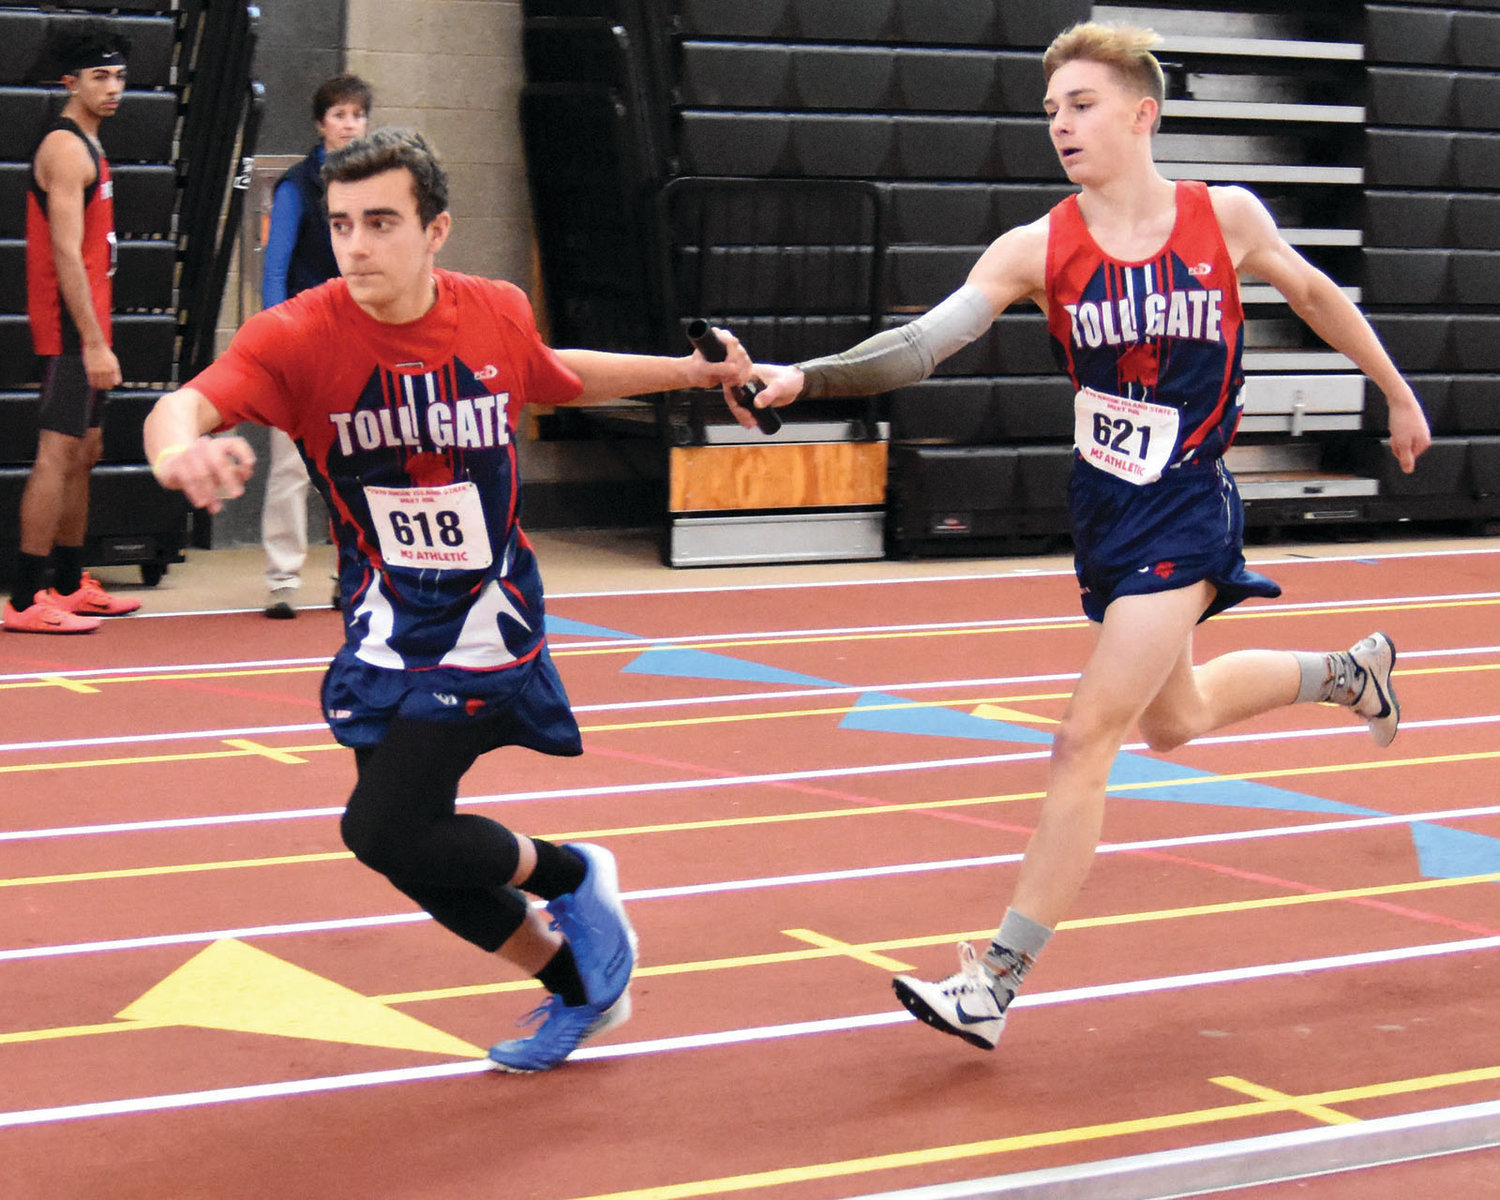 PASS THE BATON: Toll Gate's Dylan Barlow and Michael Murphy.